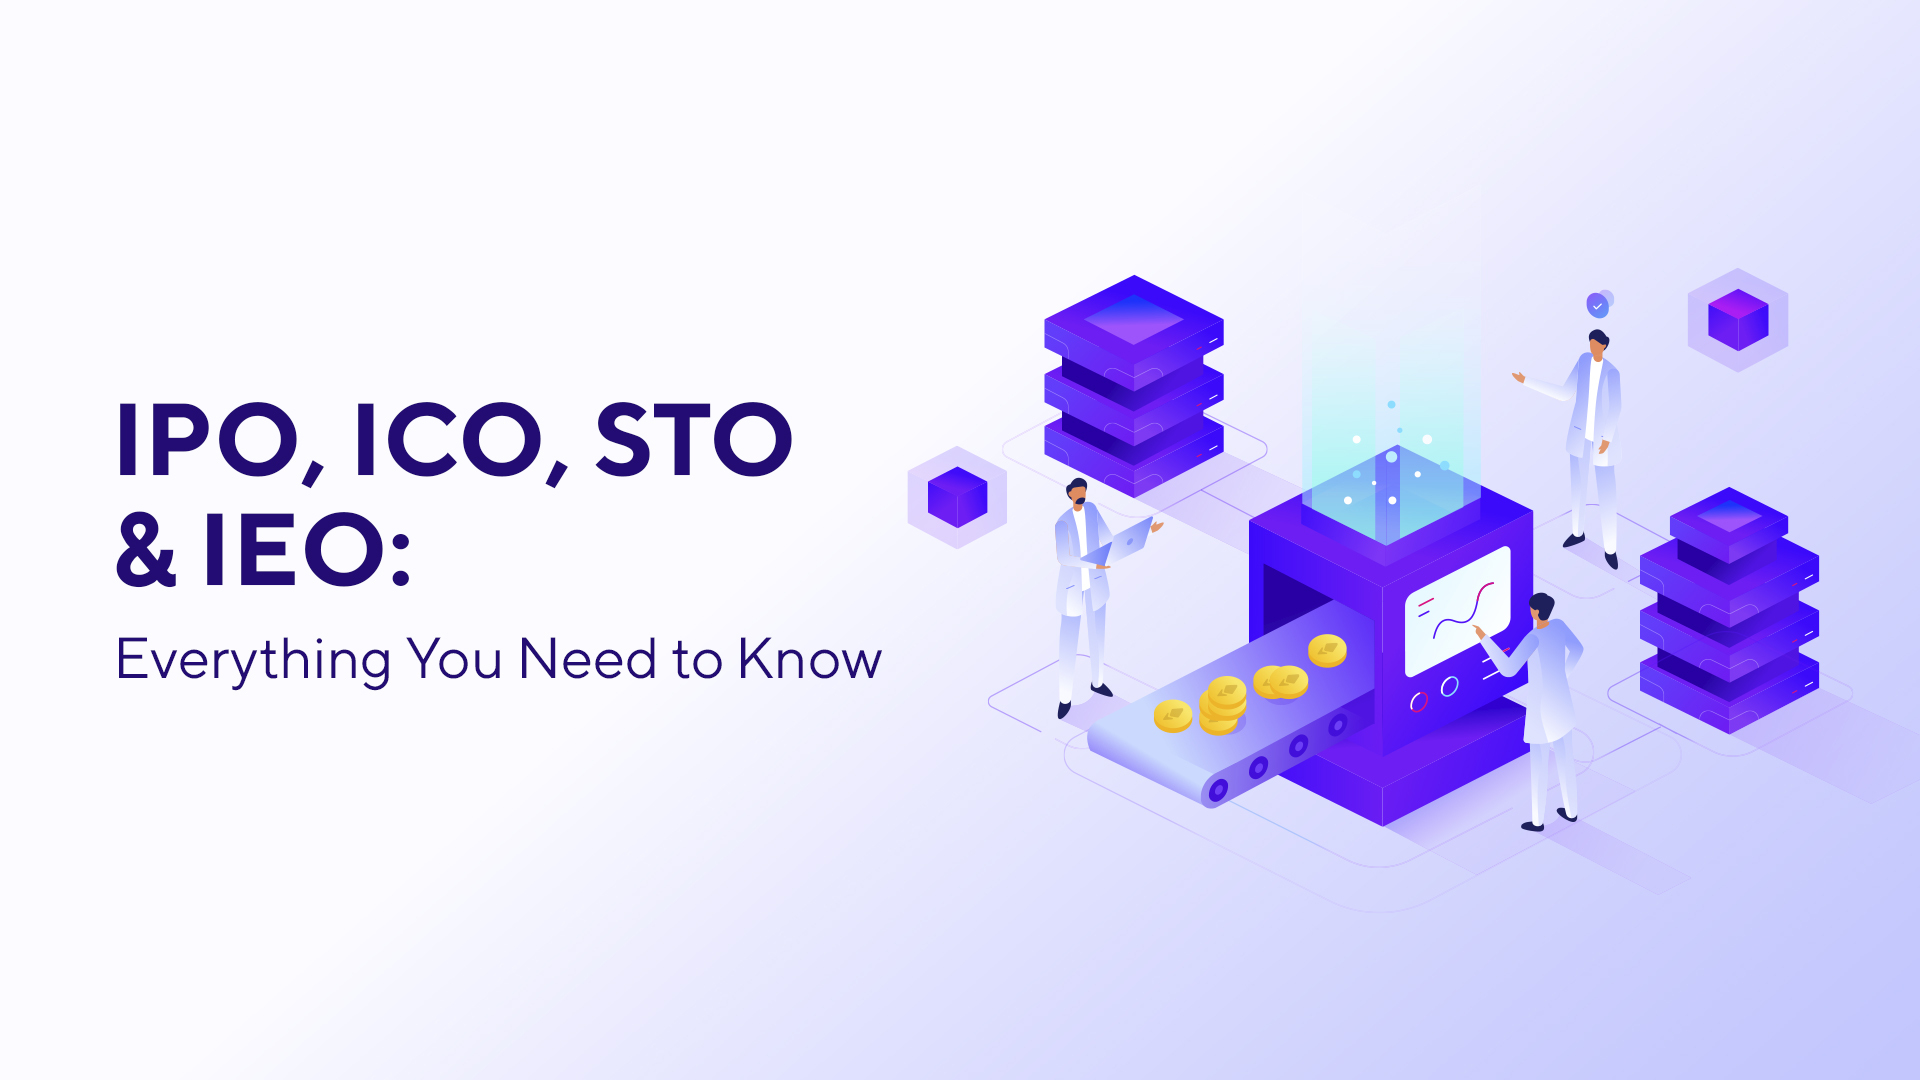 IPO, ICO, STO & IEO: Everything You Need to Know